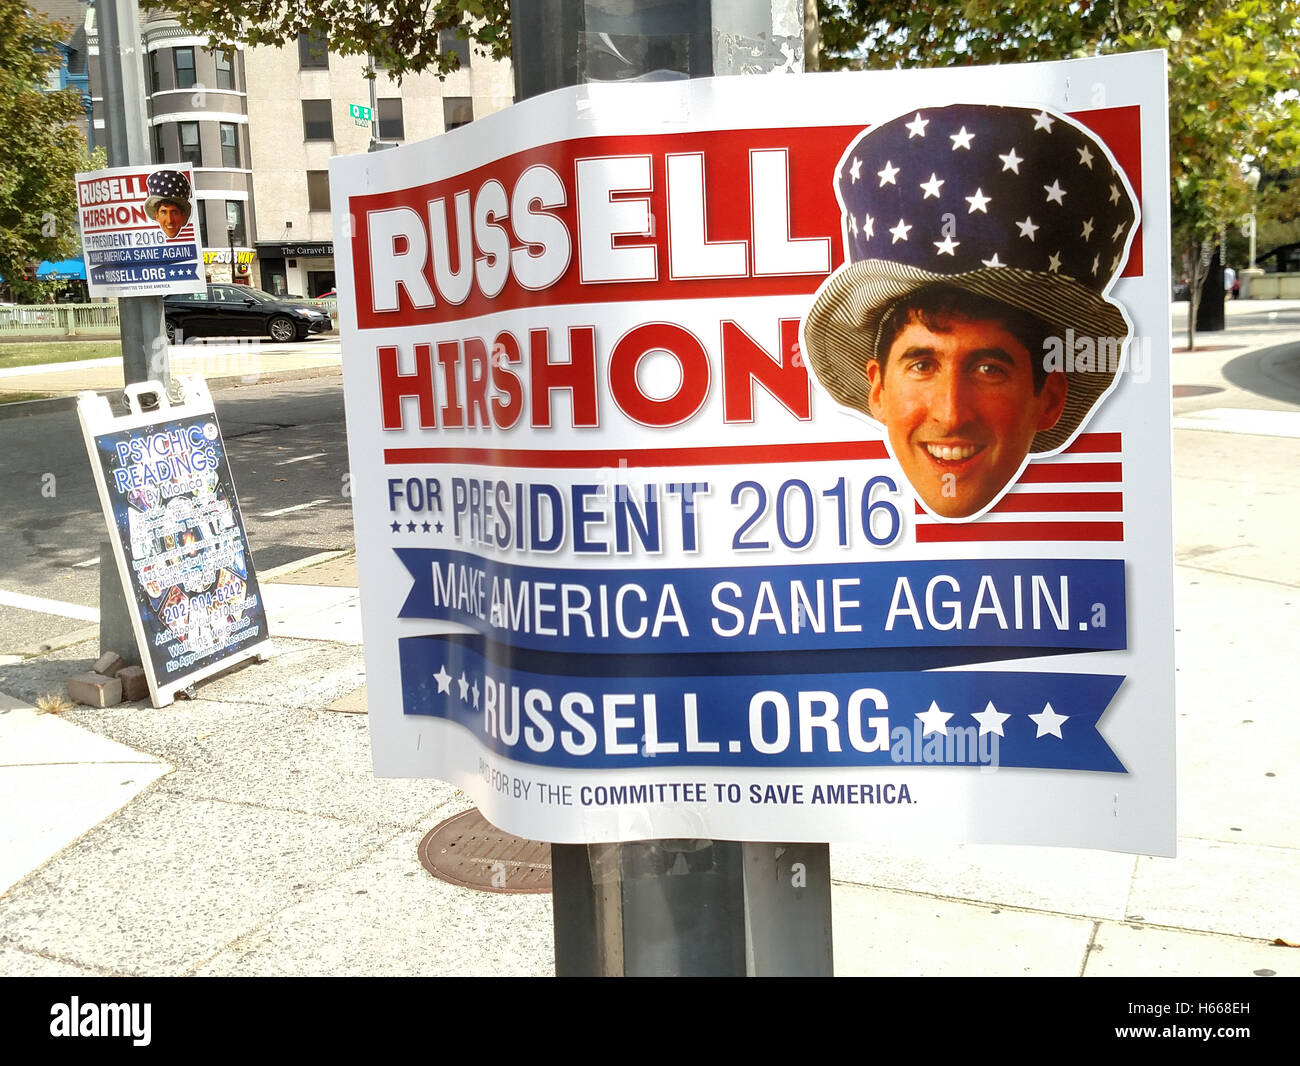 2016 U.S. Presidential Campaign Candidate Russell Hirshon promotes charitable giving over political contributions. - Stock Image